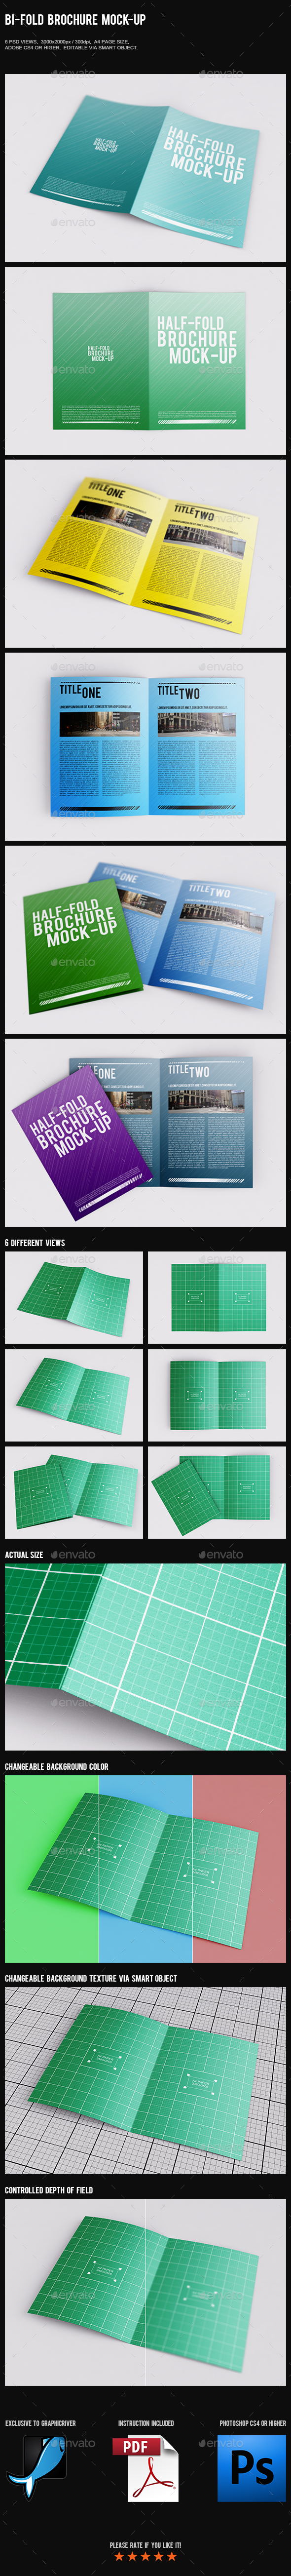 Bi-Fold Brochure Mock-Up - Brochures Print